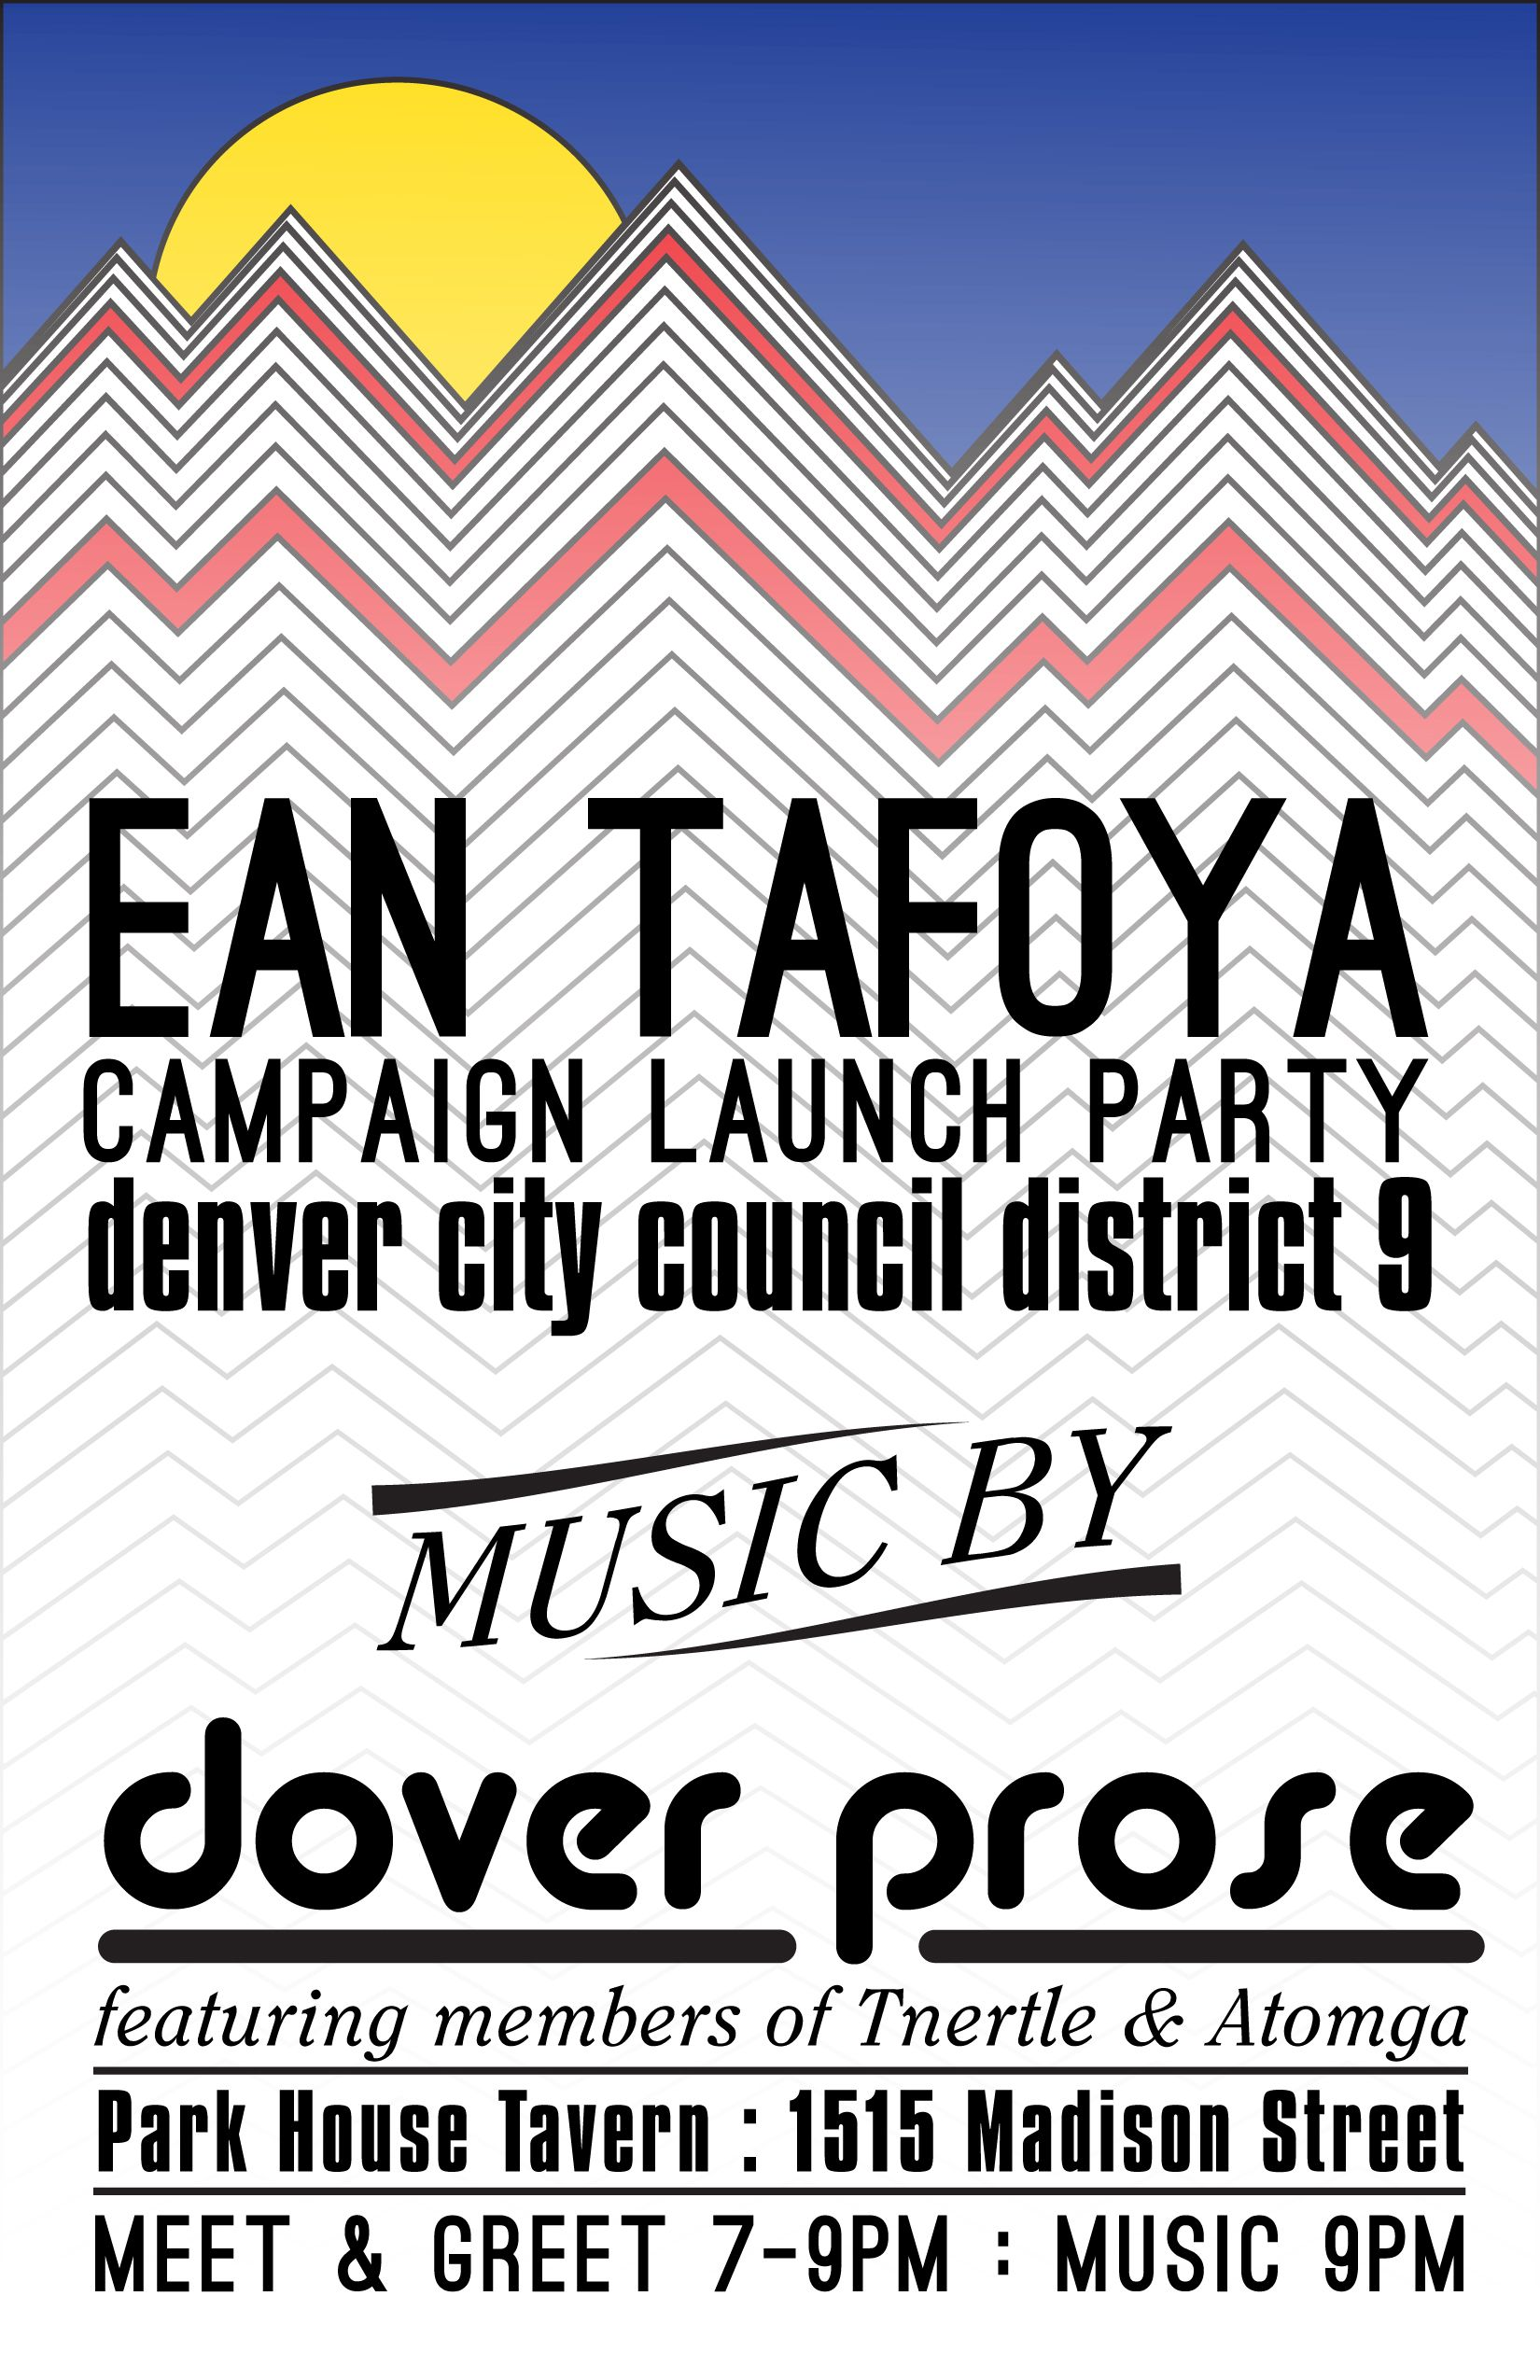 This Saturday 1 Odin Collective will be hosting Ean